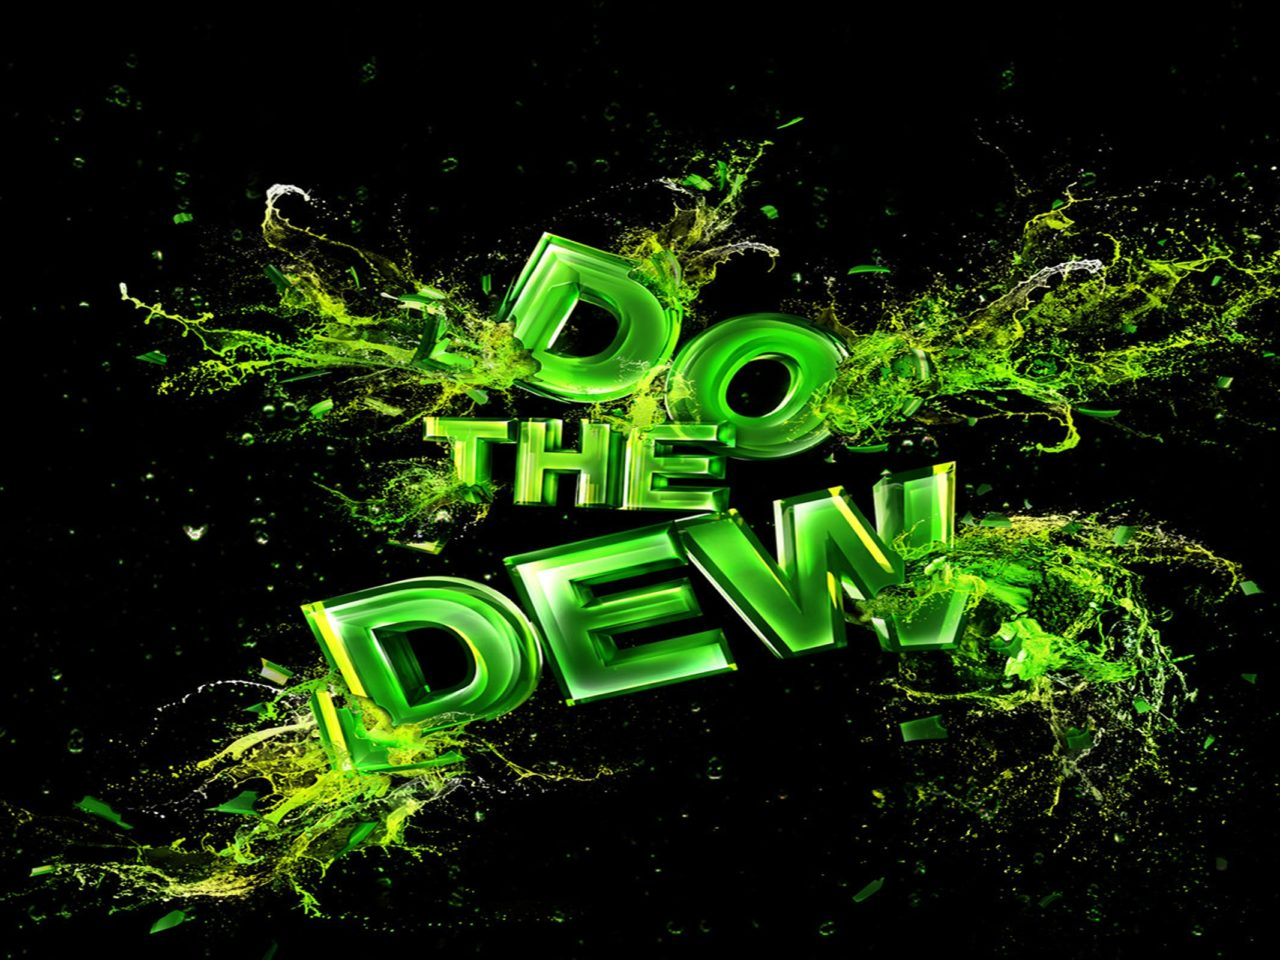 Cars 2 Wallpaper Free Download Do The Dew By Chin 06547 Wallpapers13 Com